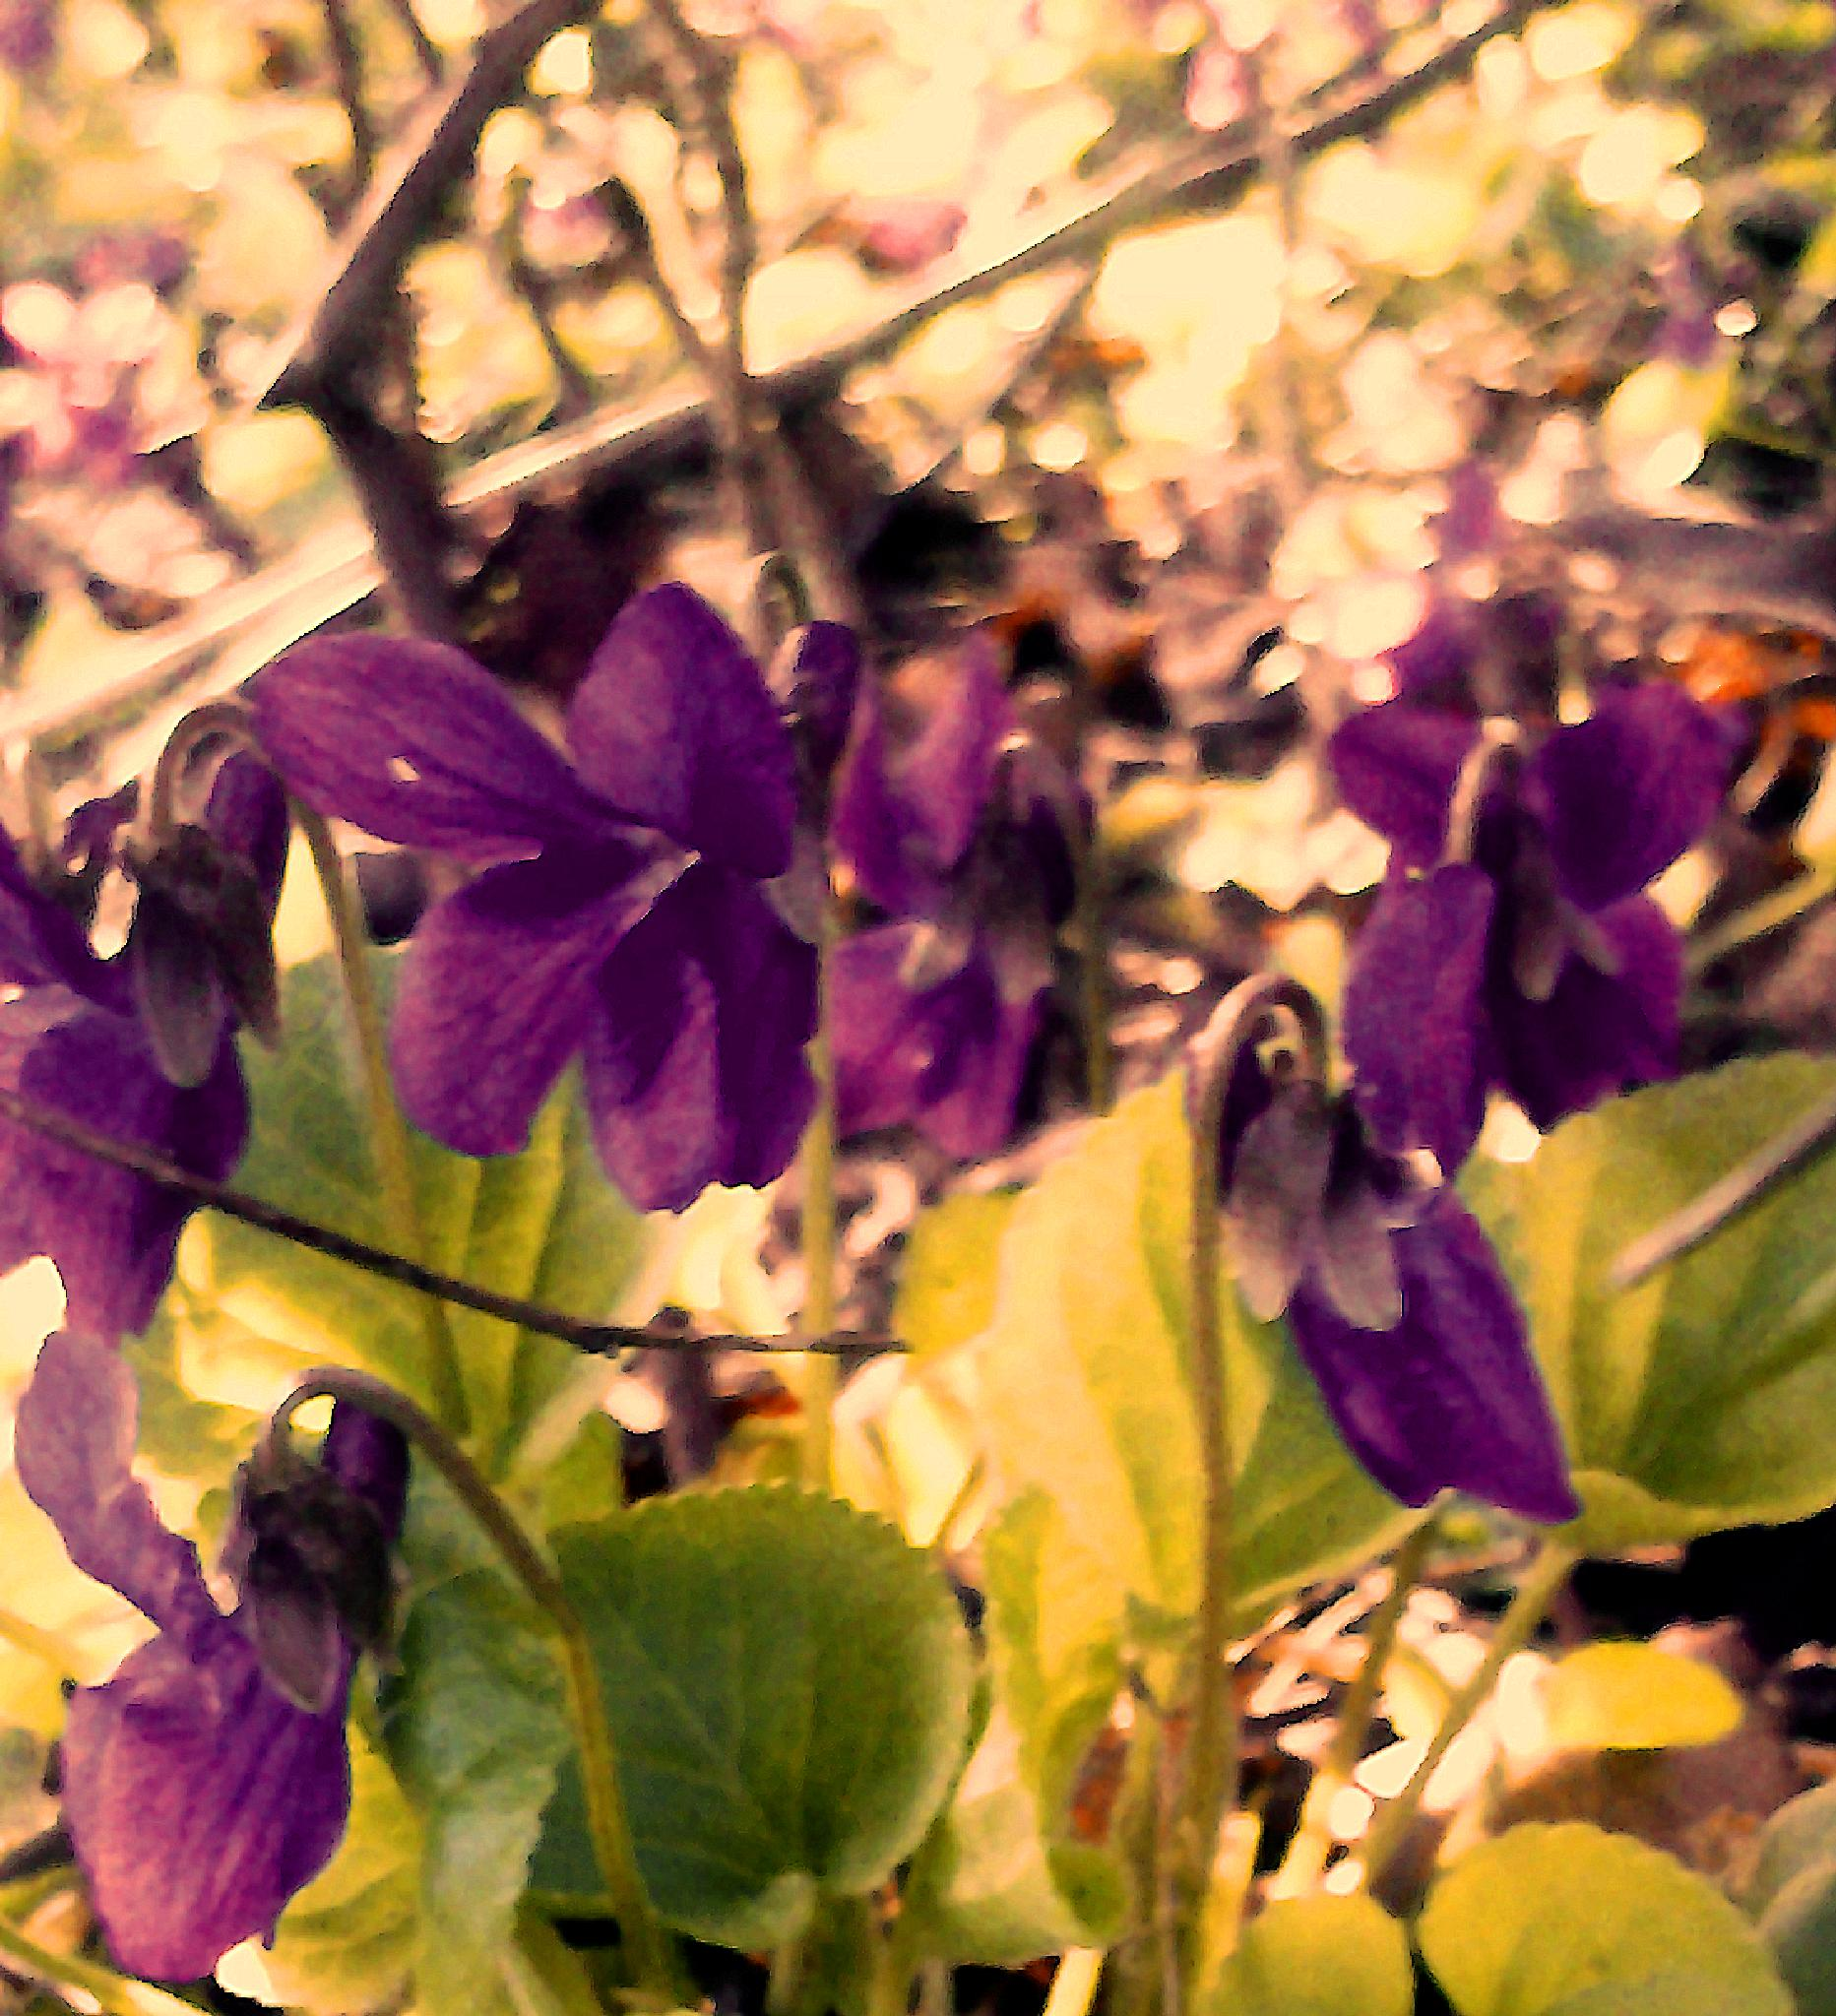 Under the bushes in my garden the violets are blooming. by MiaE